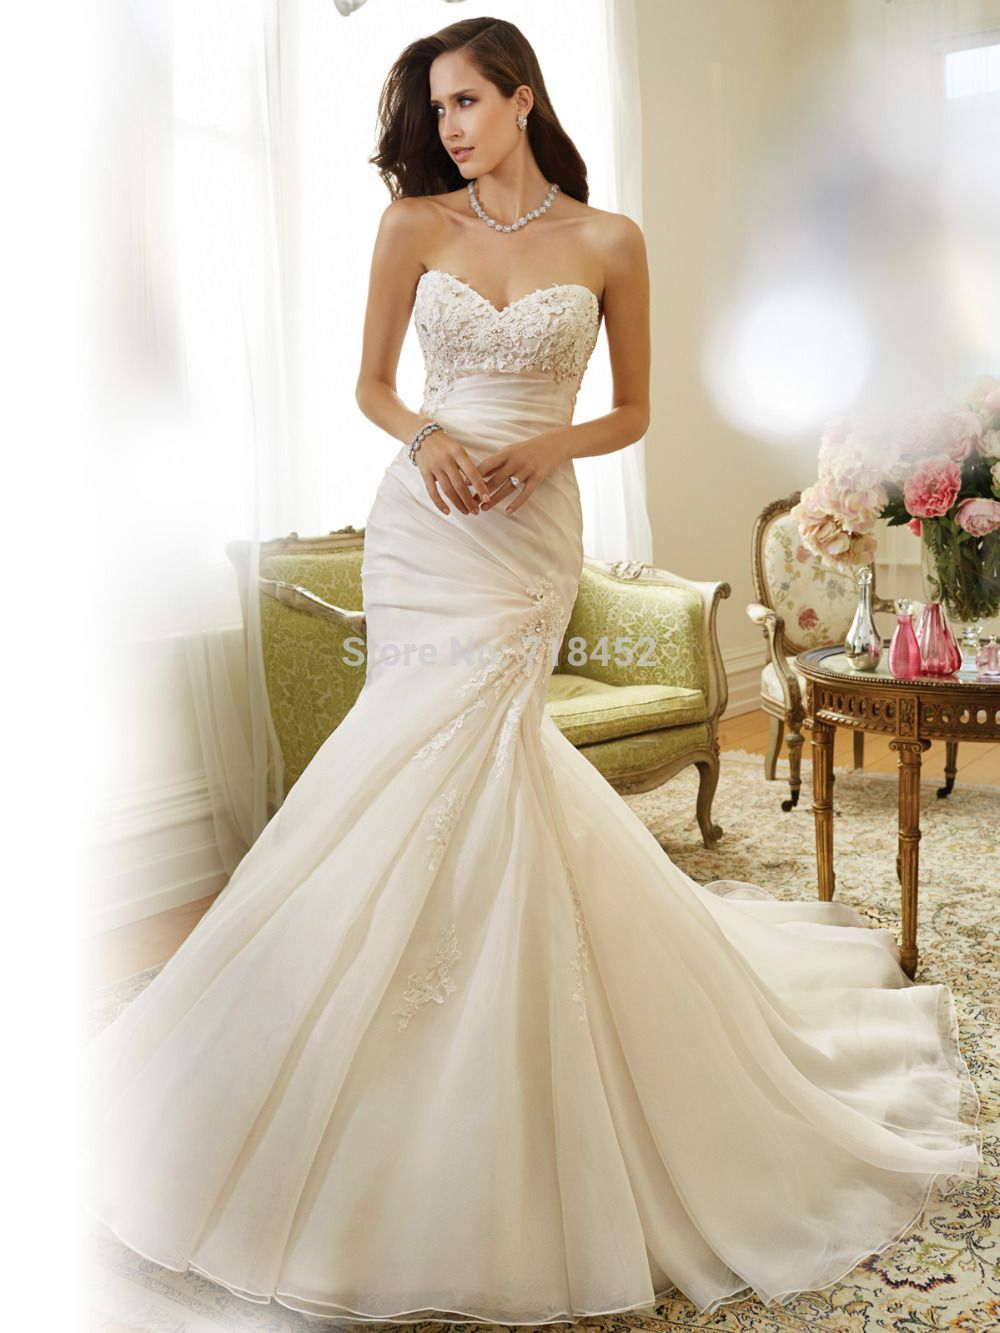 Lace sweetheart wedding dress  Mermaid  Wedding Dress Appliques Sweetheart Bridal Gowns Lace Up